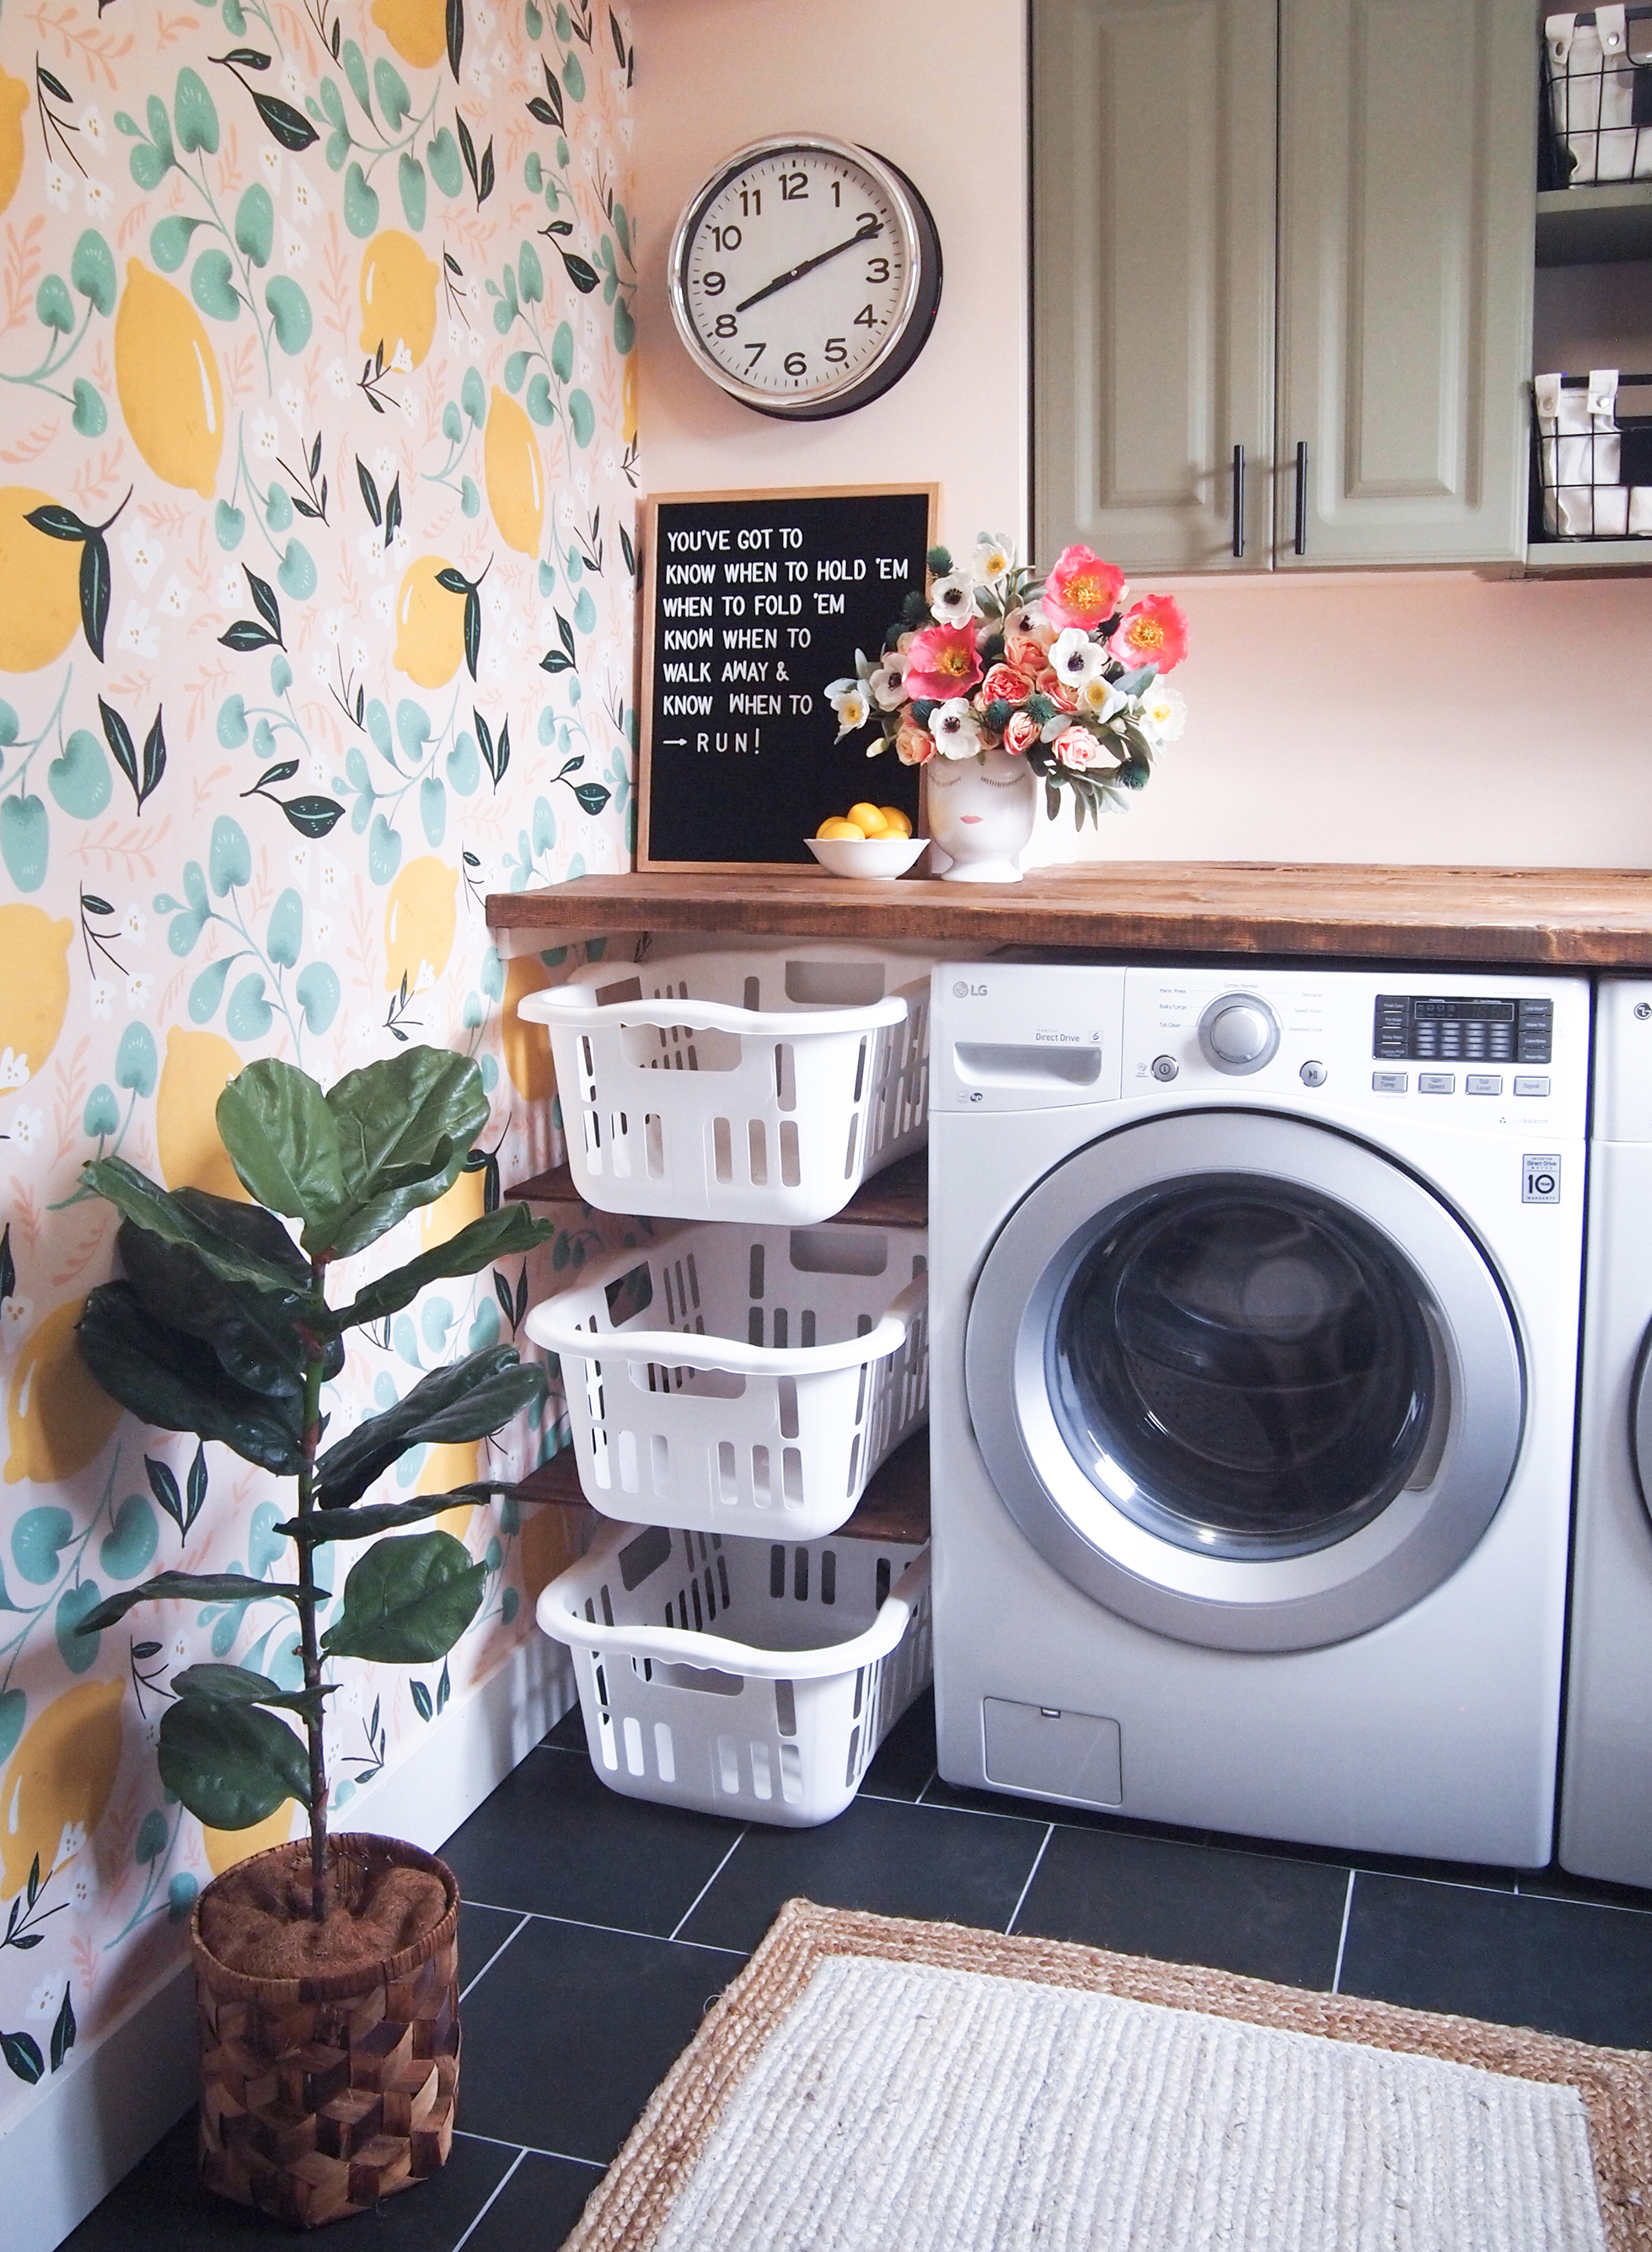 Sunny laundry room with counter above washer and dryer